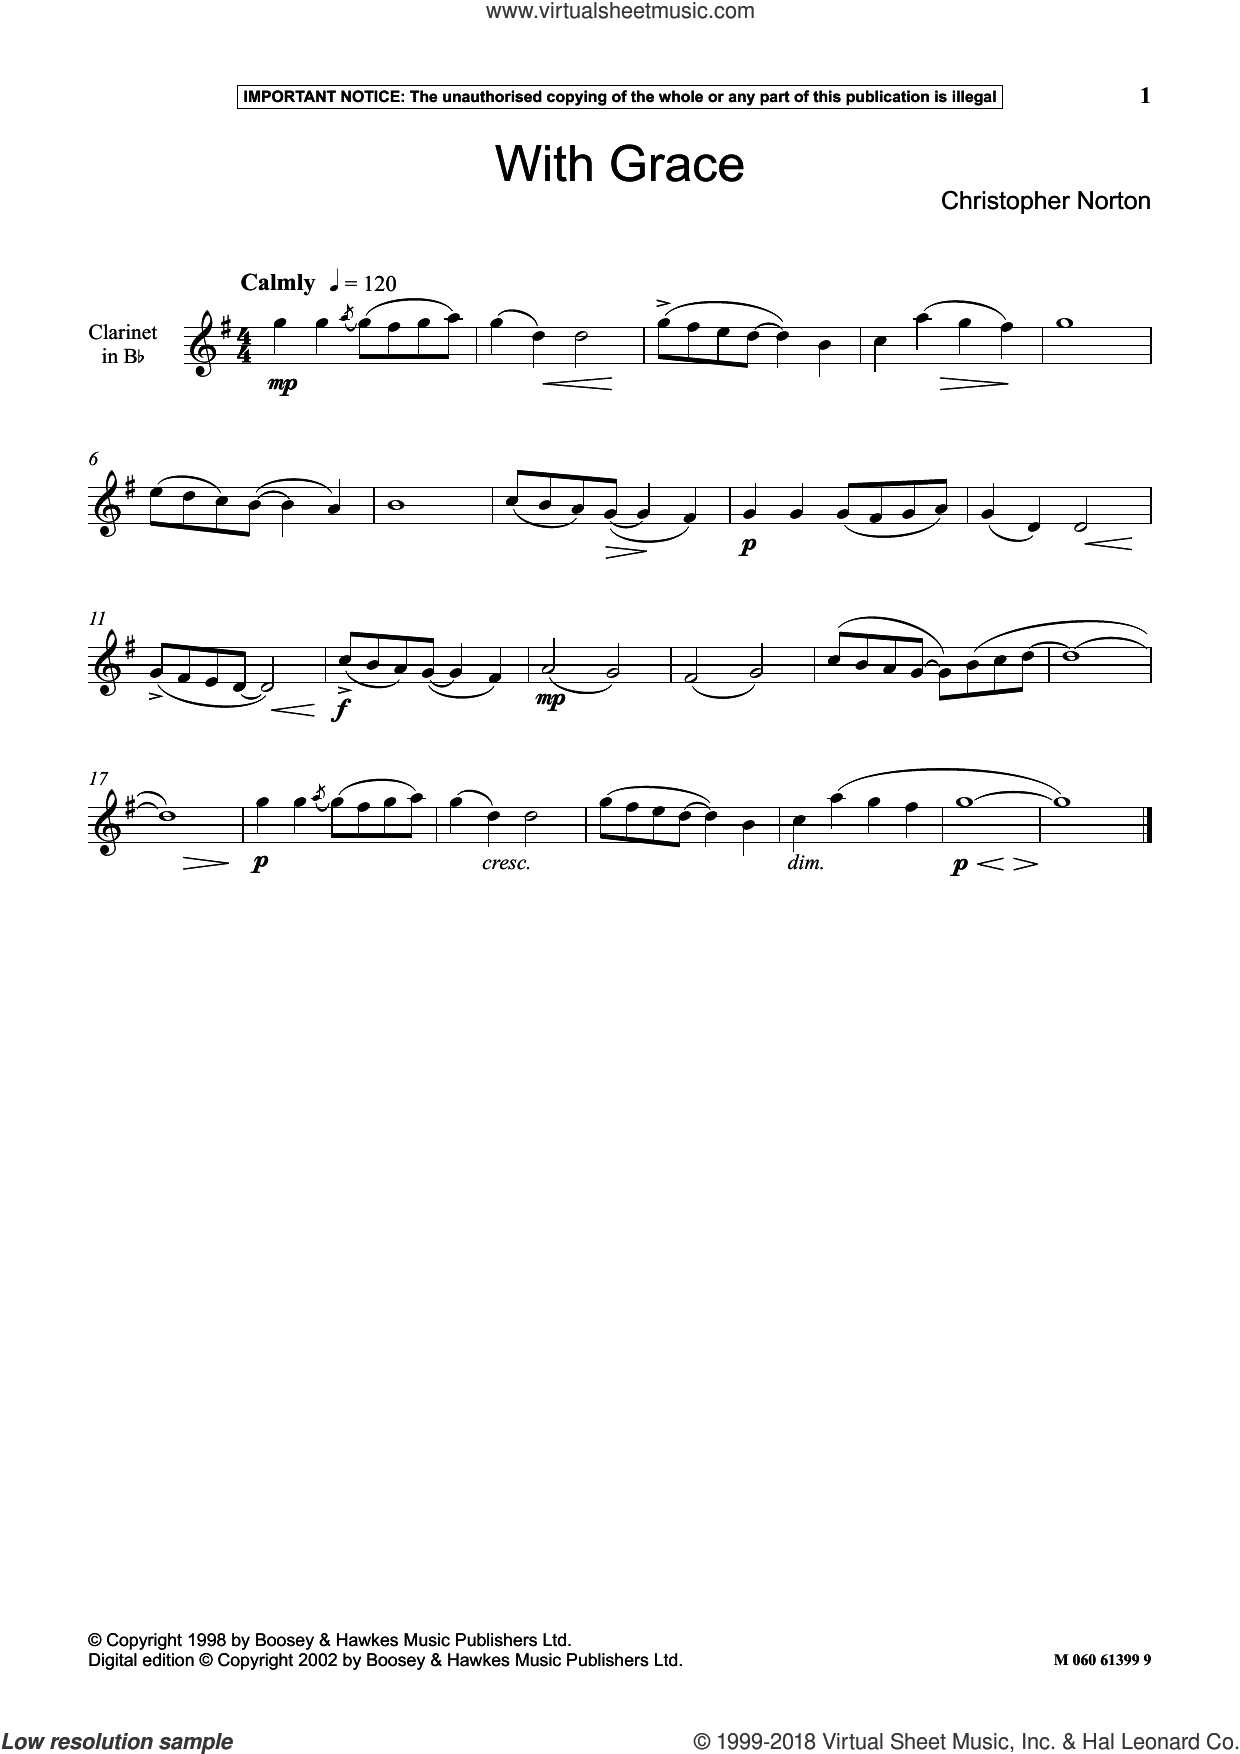 With Grace sheet music for clarinet solo by Christopher Norton, classical score, intermediate skill level